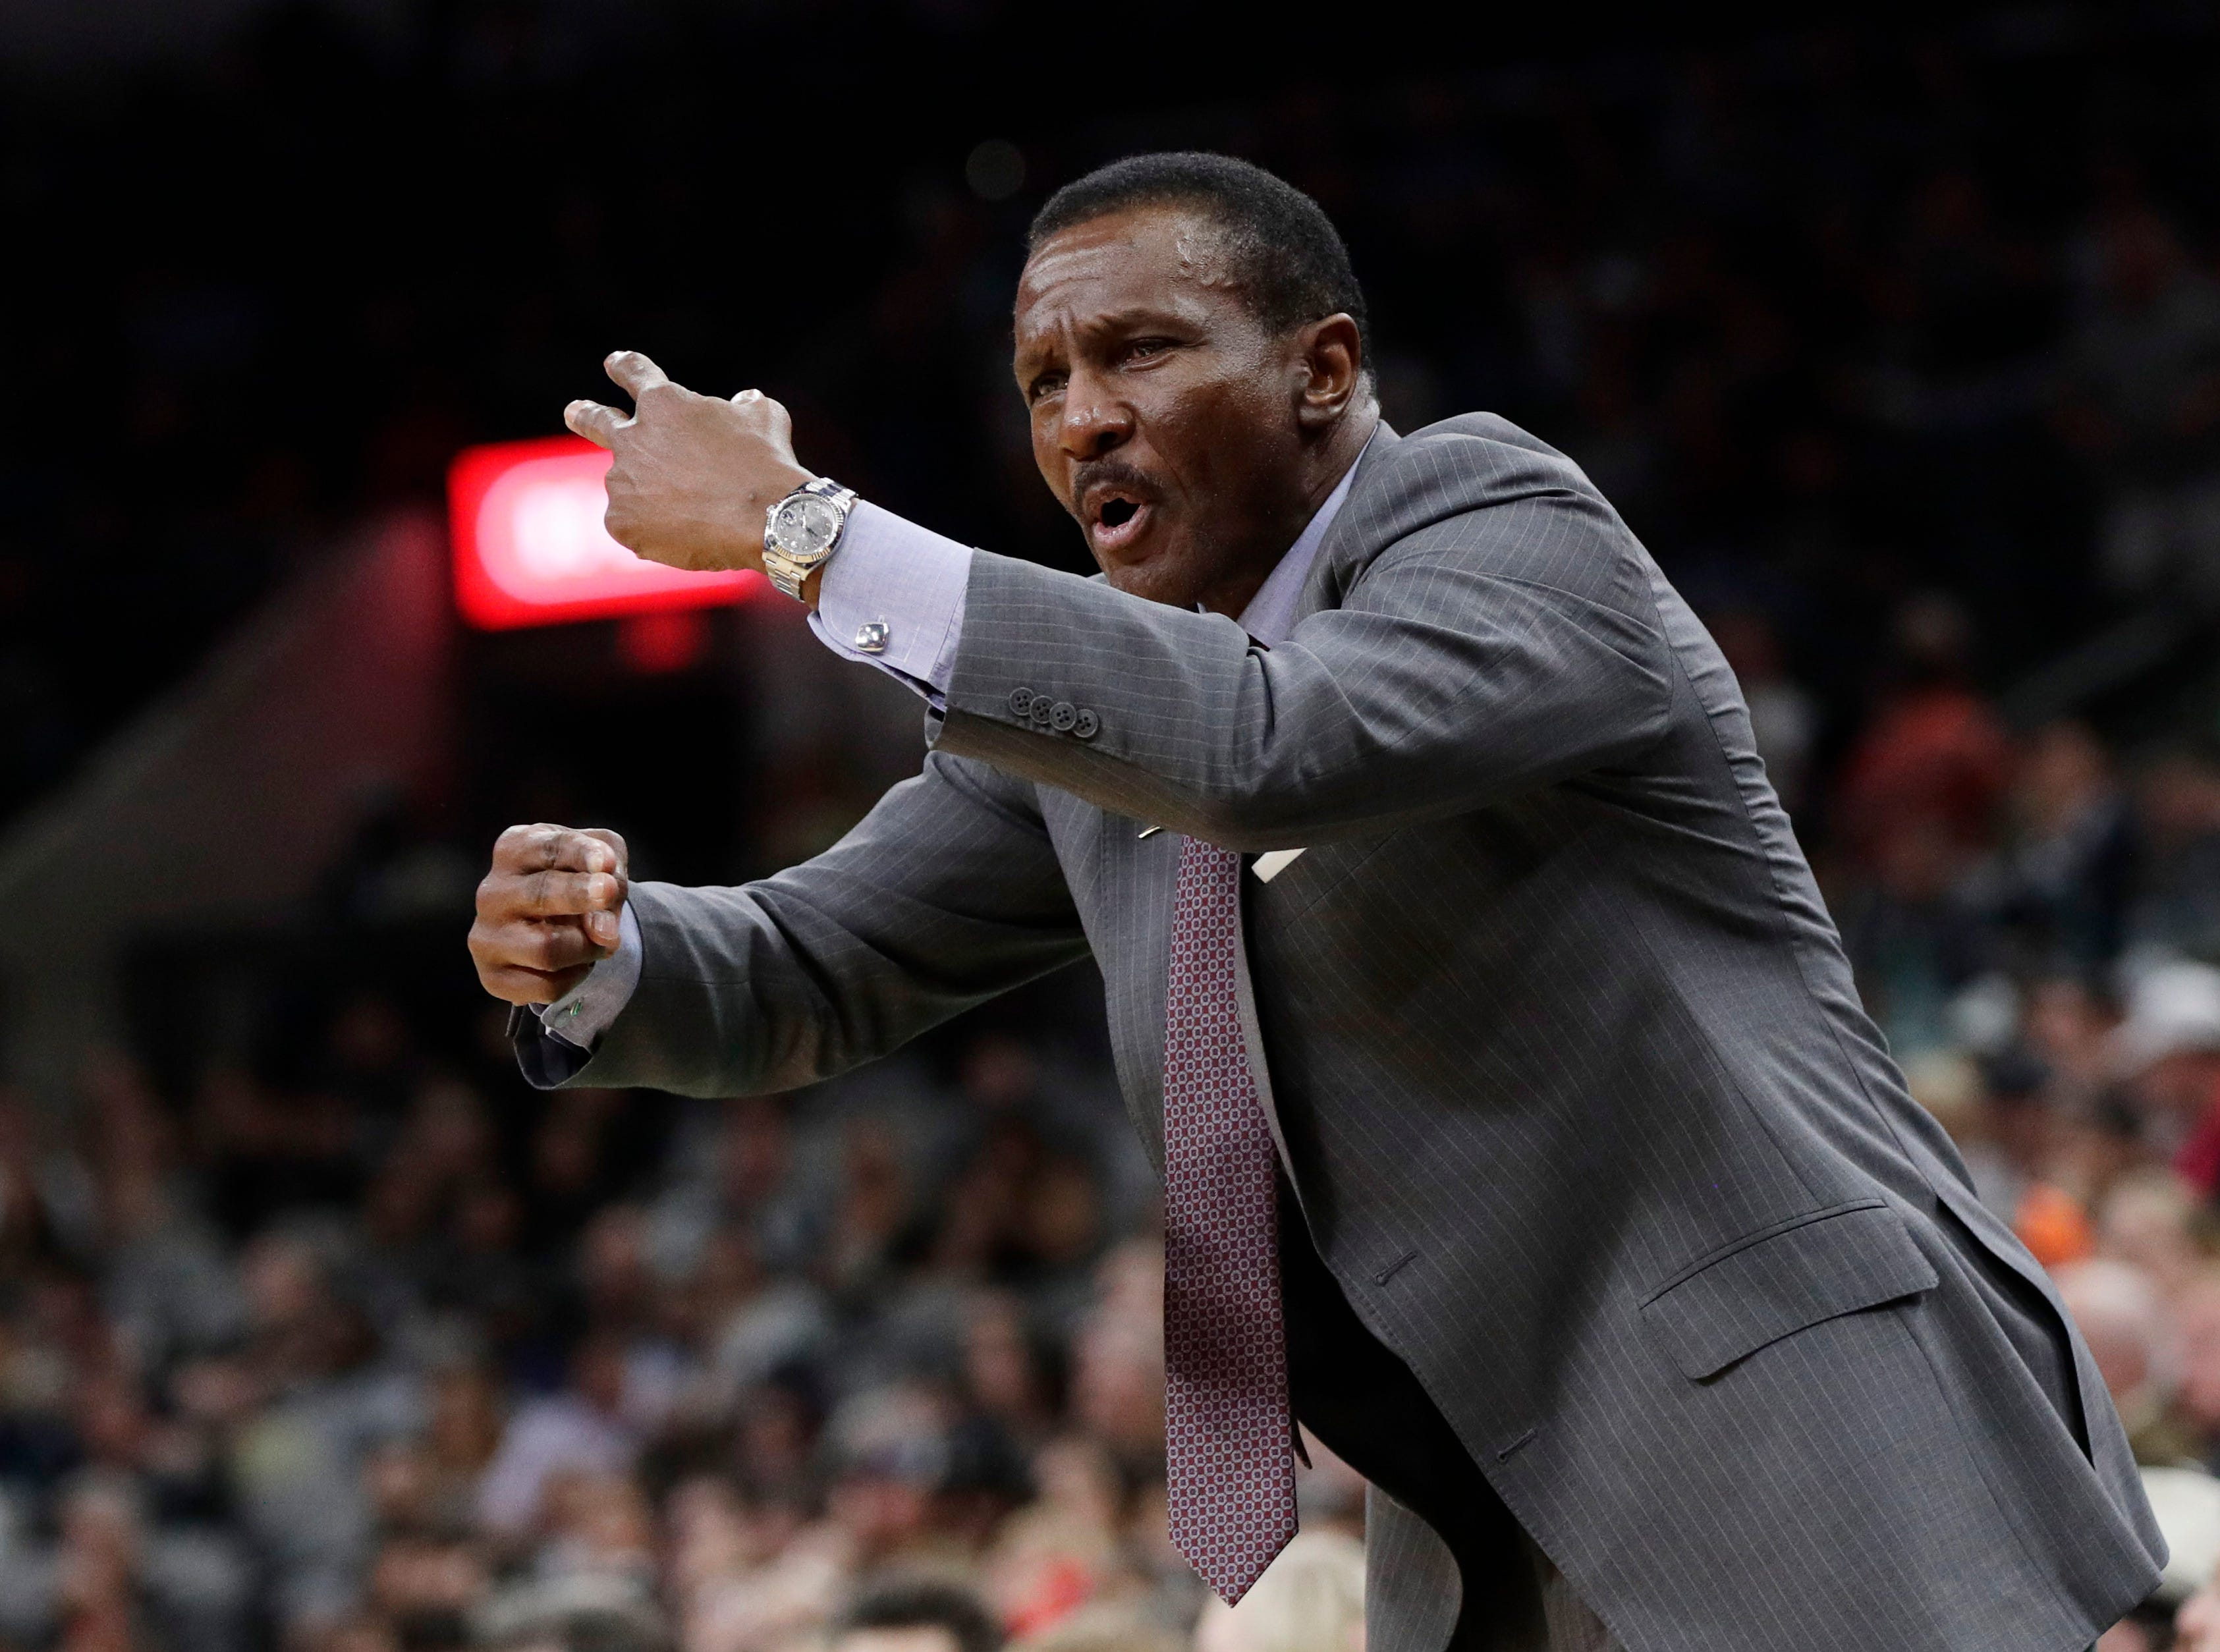 Detroit Pistons coach Dwane Casey talks to his players during the second half.